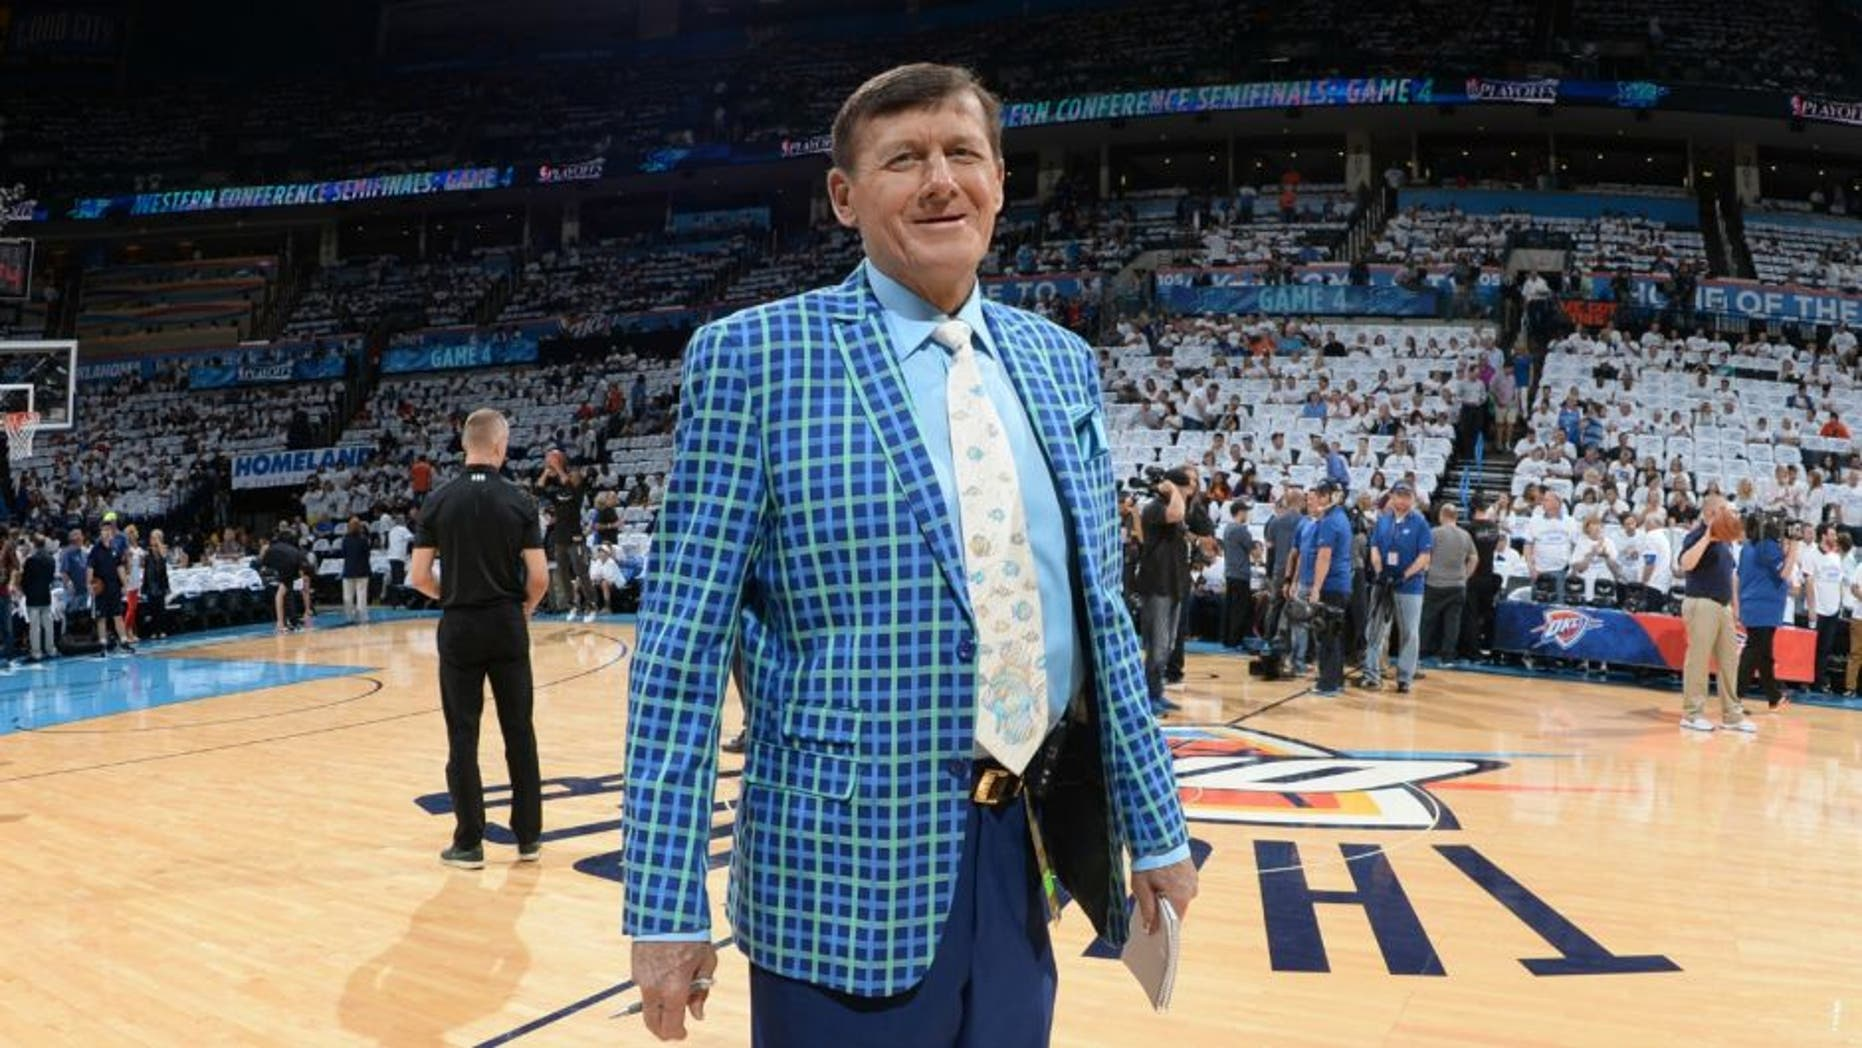 OKLAHOMA CITY, OK - MAY 8: TNT NBA sideline reporter Craig Sager looks on before Game Four of the Western Conference Semifinals between the San Antonio Spurs and Oklahoma City Thunder during the 2016 NBA Playoffs on May 8, 2016 at Chesapeake Energy Arena in Oklahoma City, Oklahoma. NOTE TO USER: User expressly acknowledges and agrees that, by downloading and or using this photograph, User is consenting to the terms and conditions of the Getty Images License Agreement. Mandatory Copyright Notice: Copyright 2016 NBAE (Photo by Garrett Ellwood/NBAE via Getty Images)